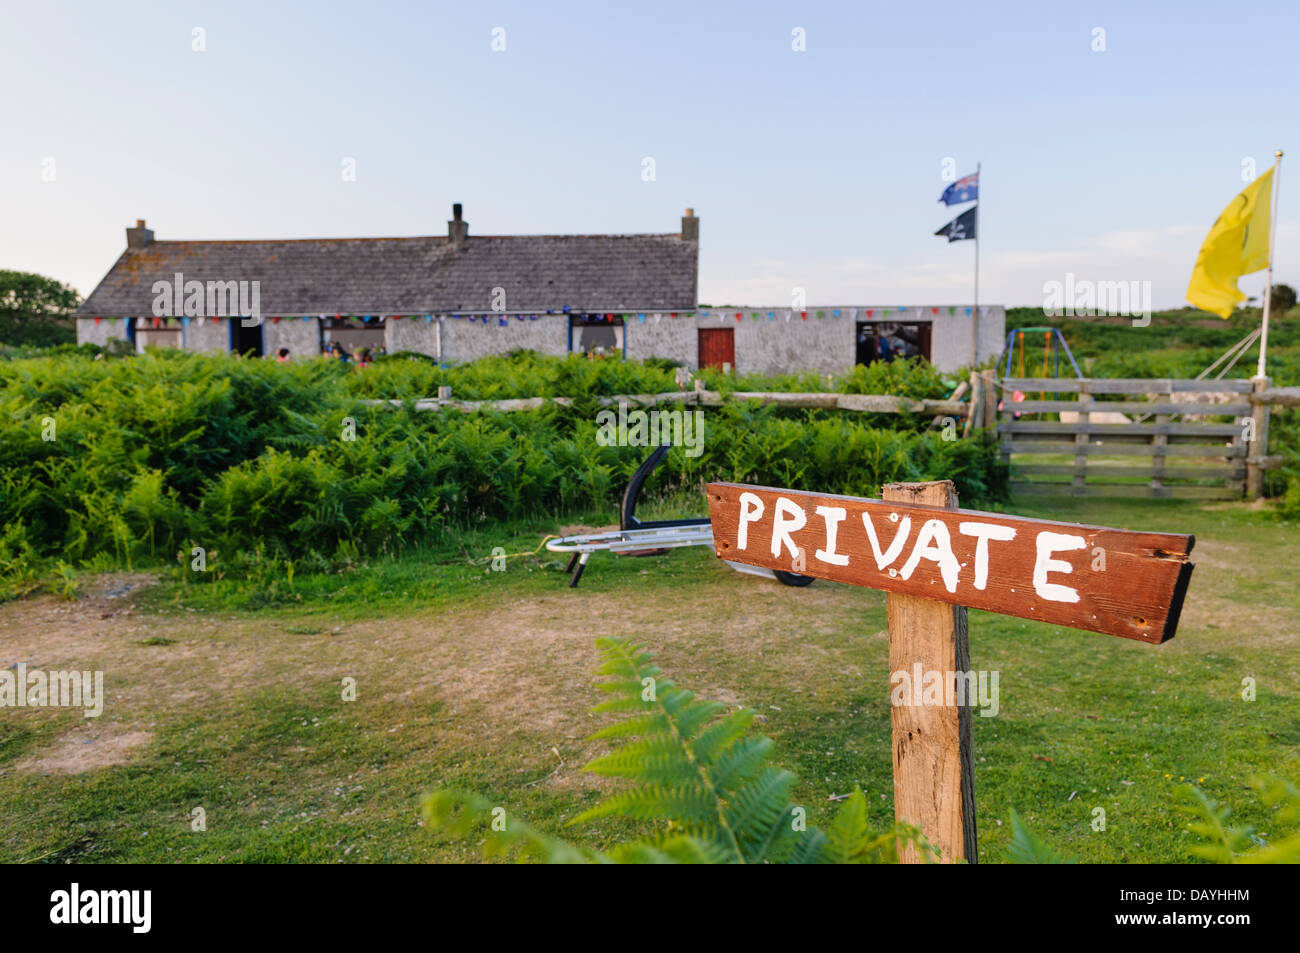 Private sign outside a house on the Copeland Island, Northern Ireland, Flags are flown when the property is occupied - Stock Image